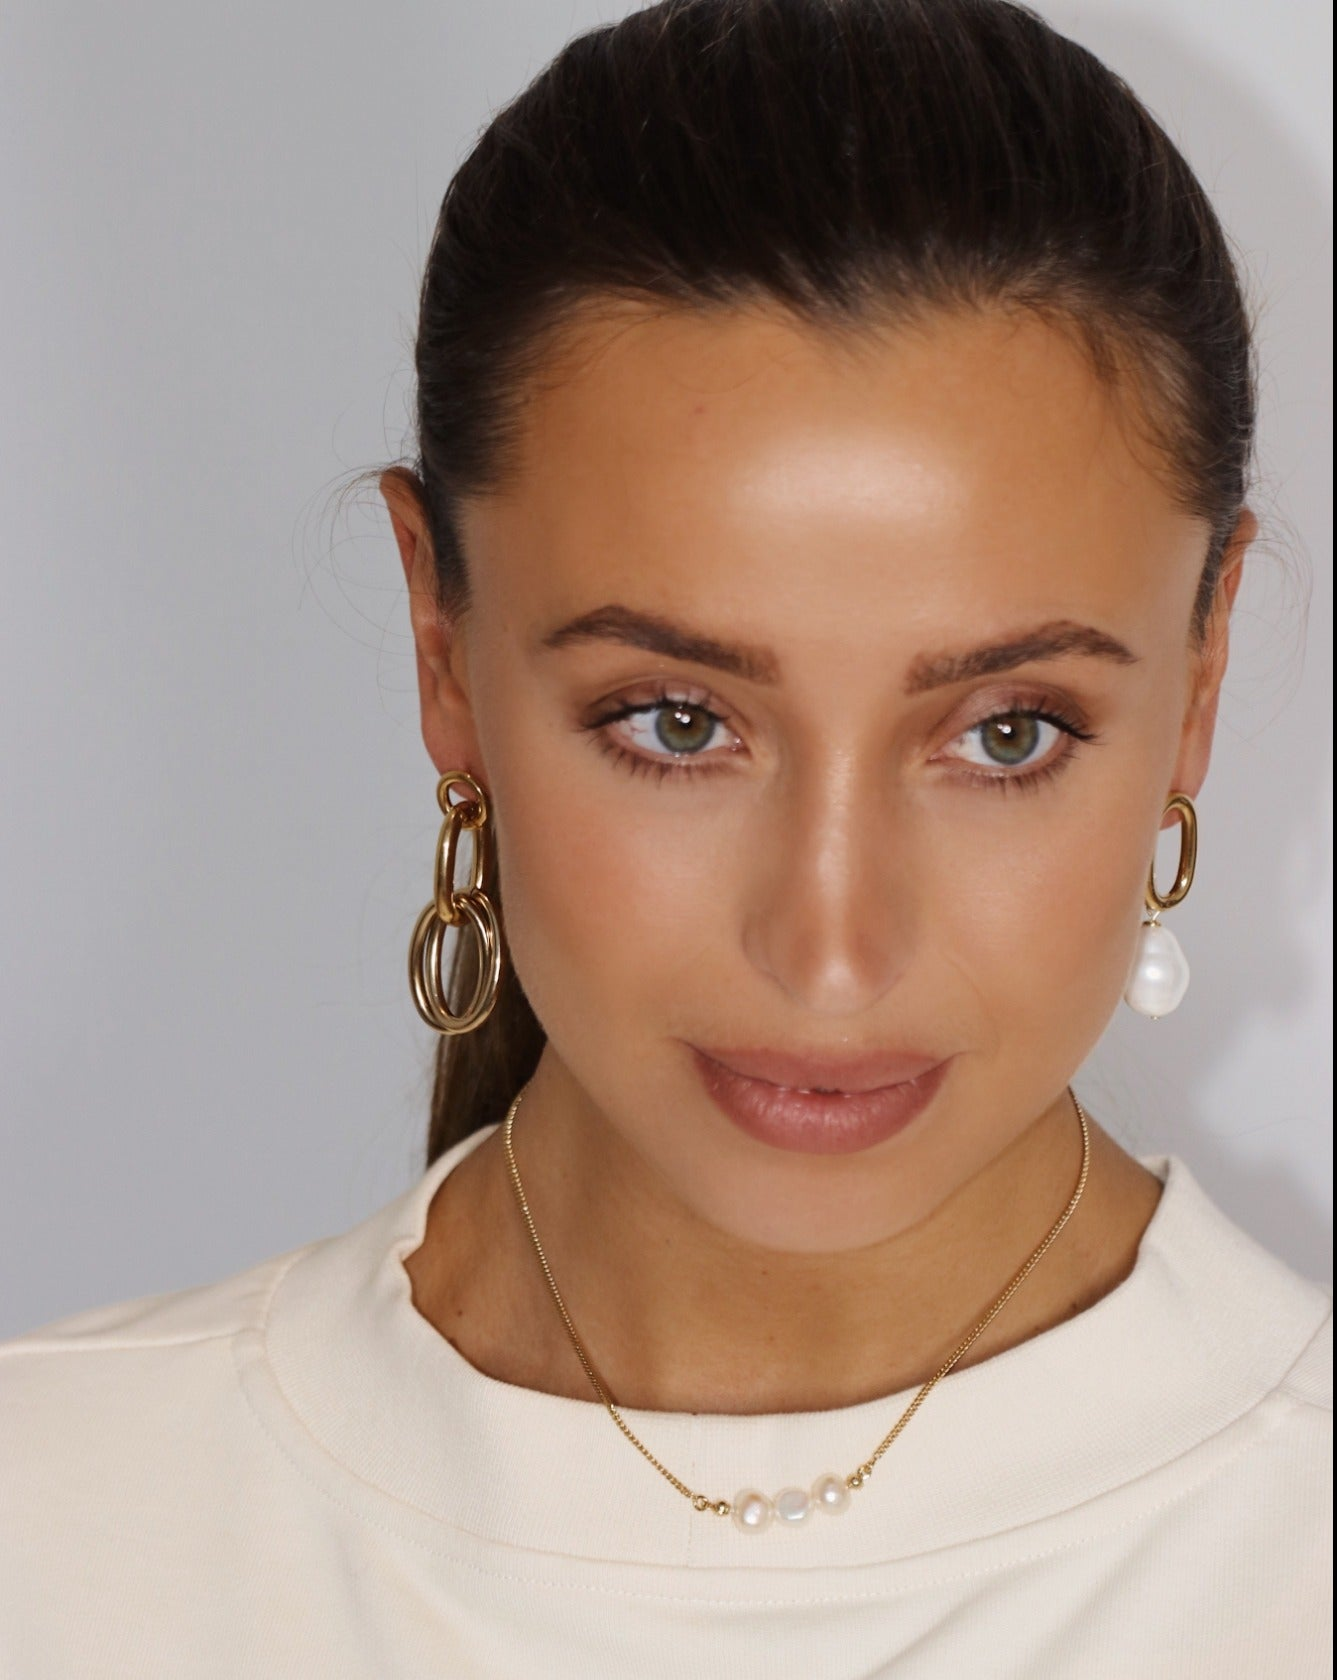 Evi SINGLE gold chain earrings